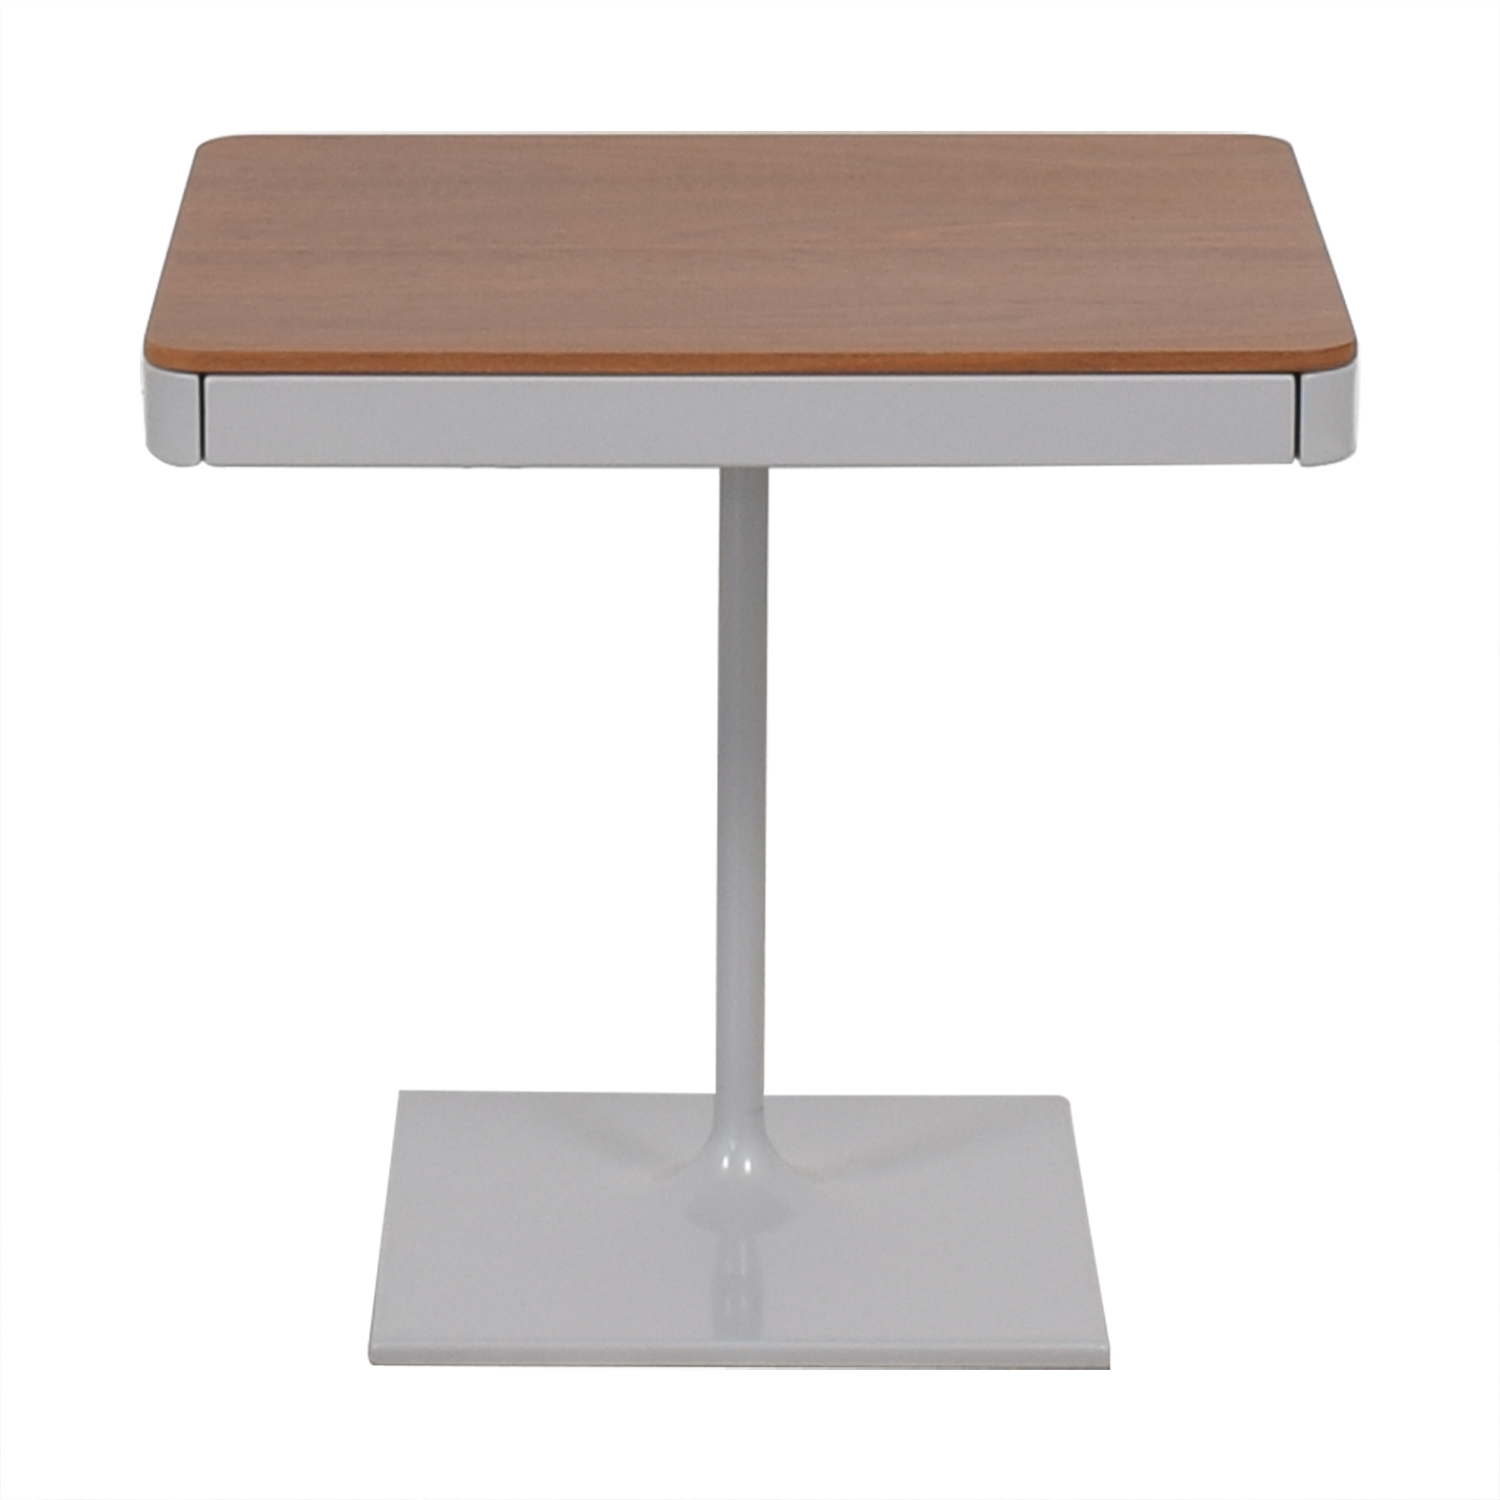 buy Design Within Reach Min Bedside Table with Pedestal Base Design Within Reach Tables